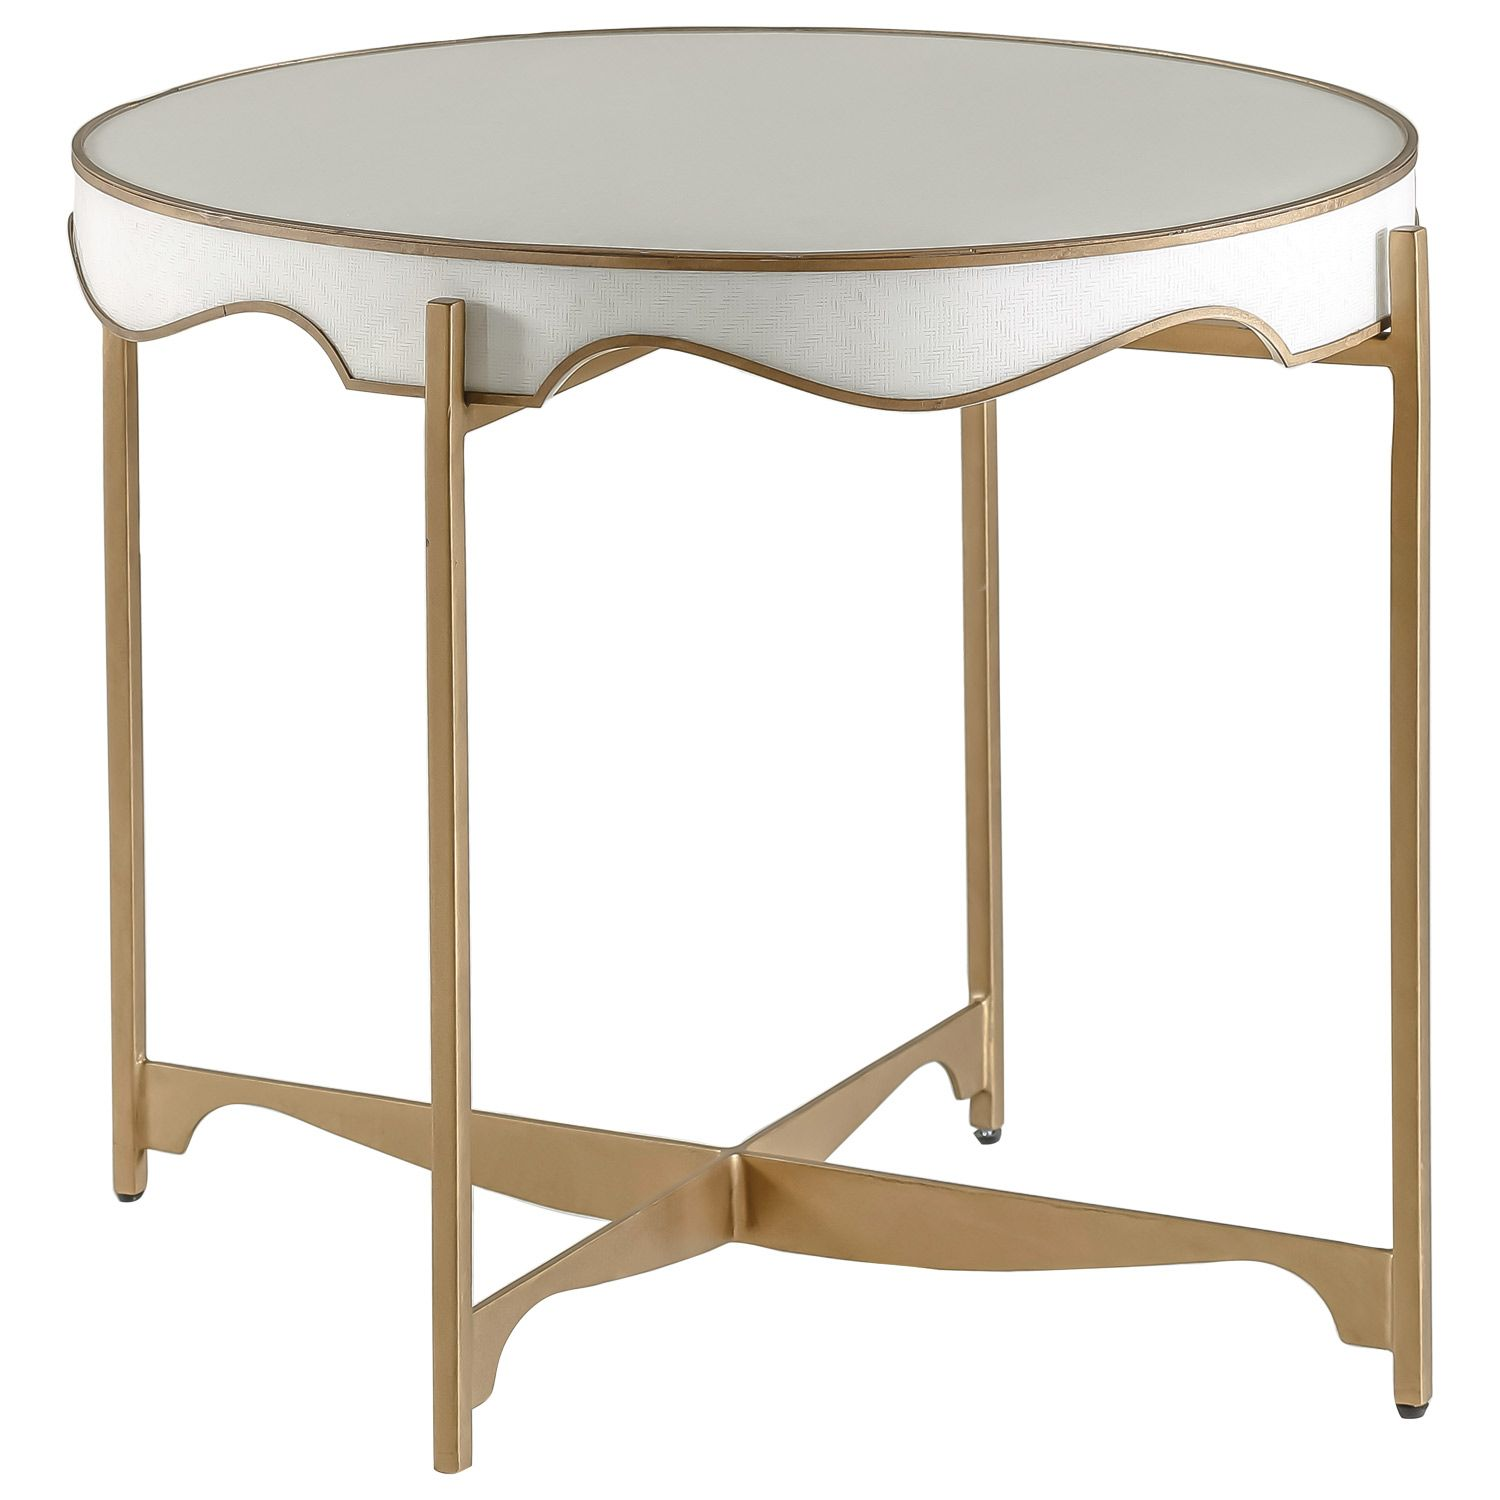 Gabby Furniture Trudy Oval Side Table #laylagrayce